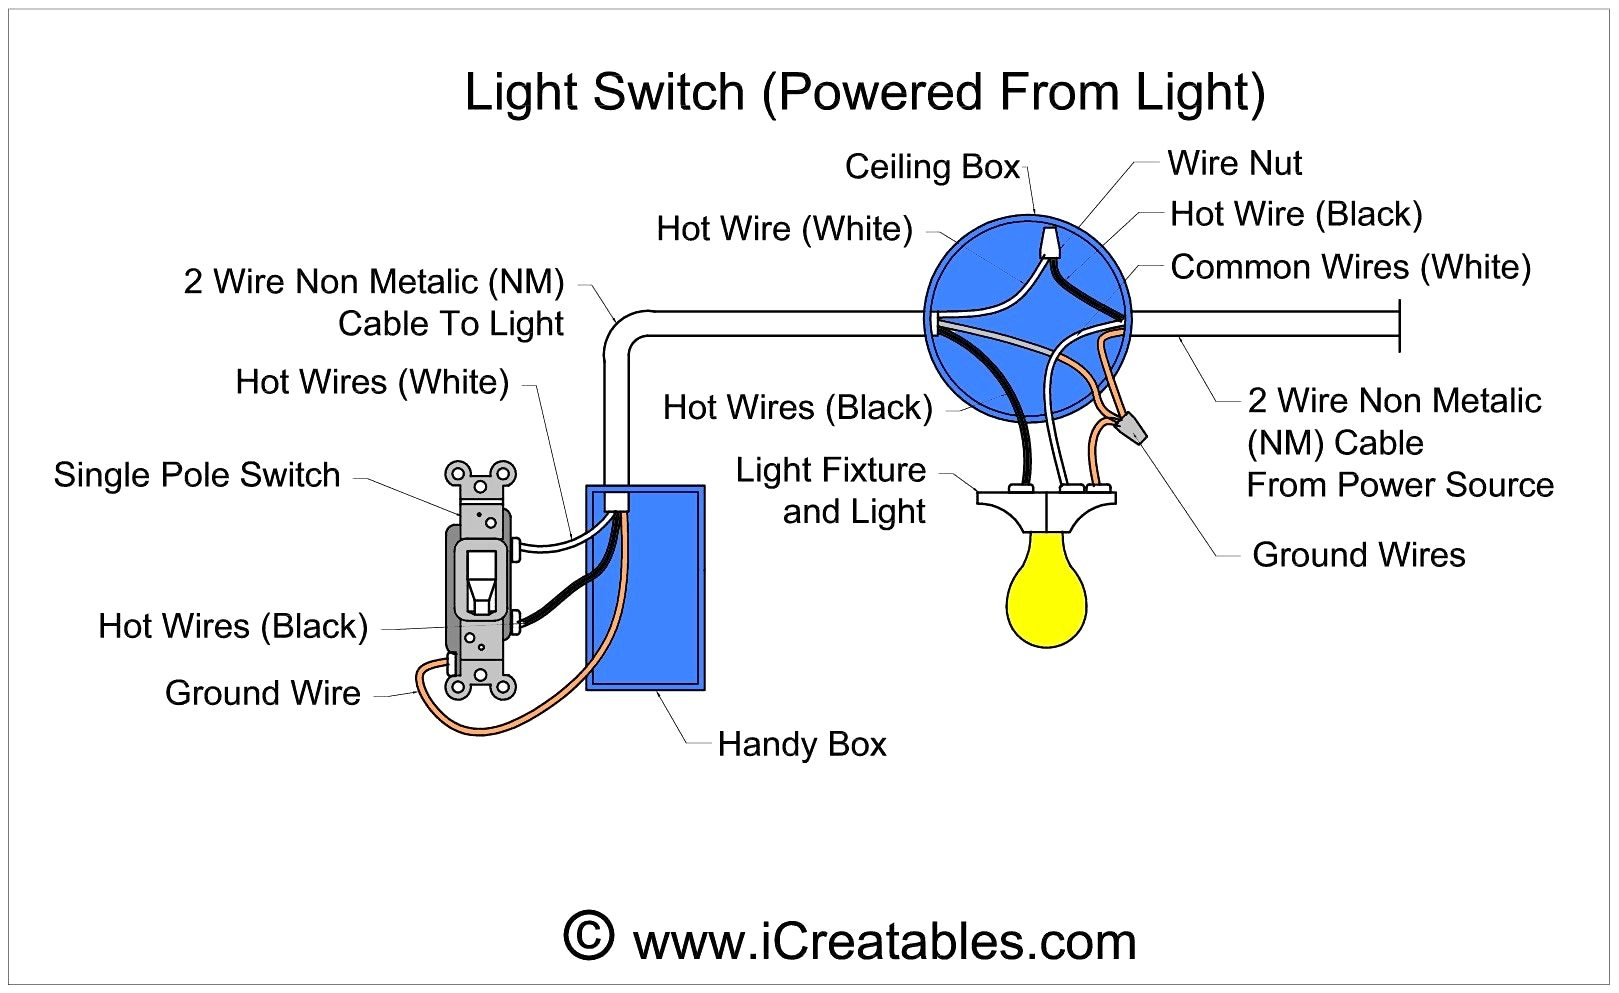 S3 Single Pole Switch Diagram - Data Wiring Diagram Detailed - Single Pole Switch Wiring Diagram